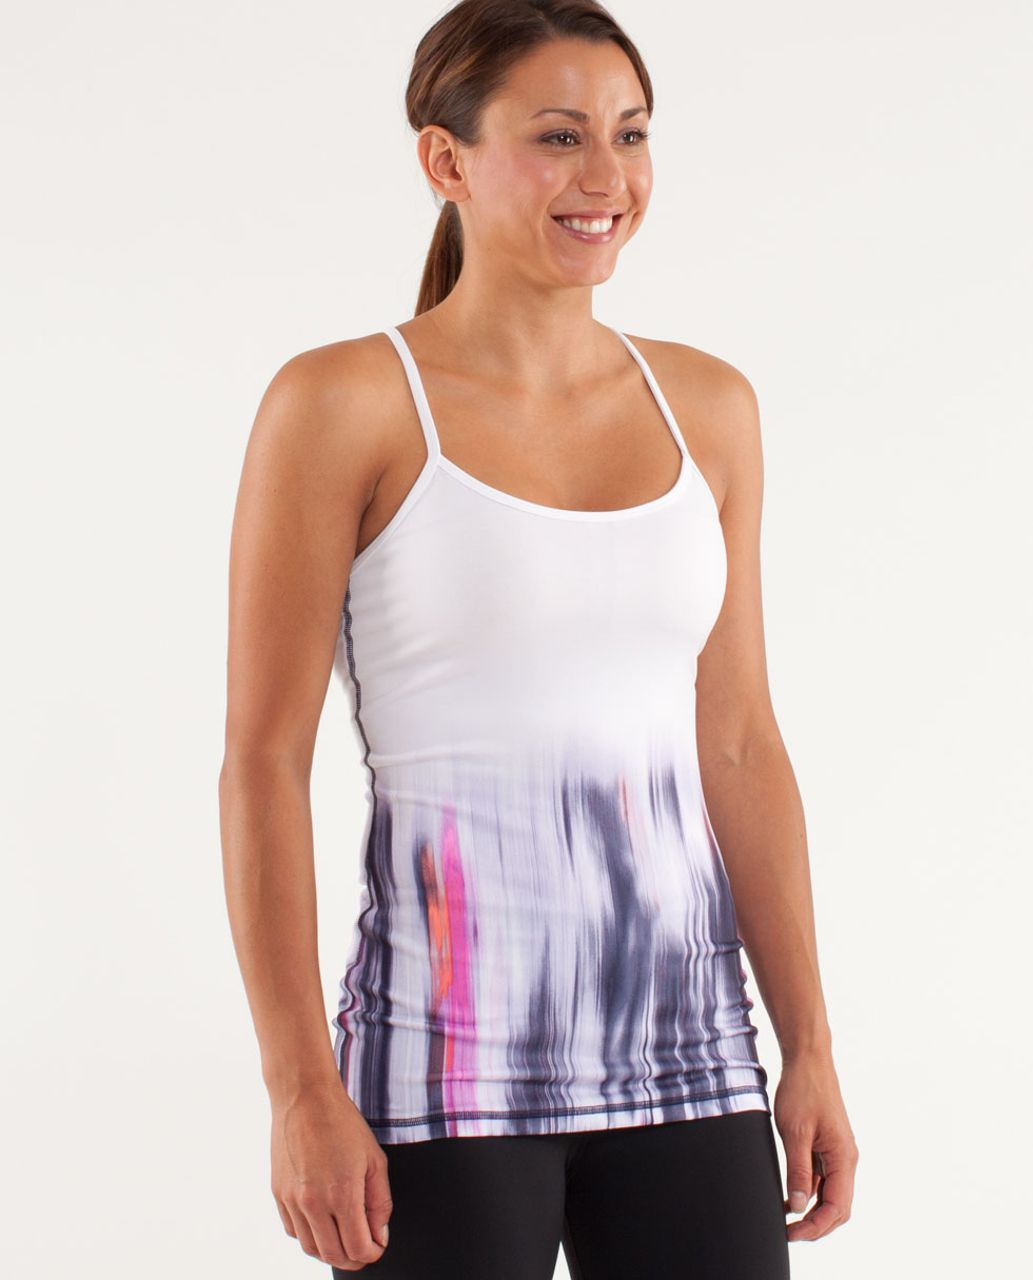 Lululemon Power Y Tank *Luon Light - Engineered Mirage Deep Indigo / White